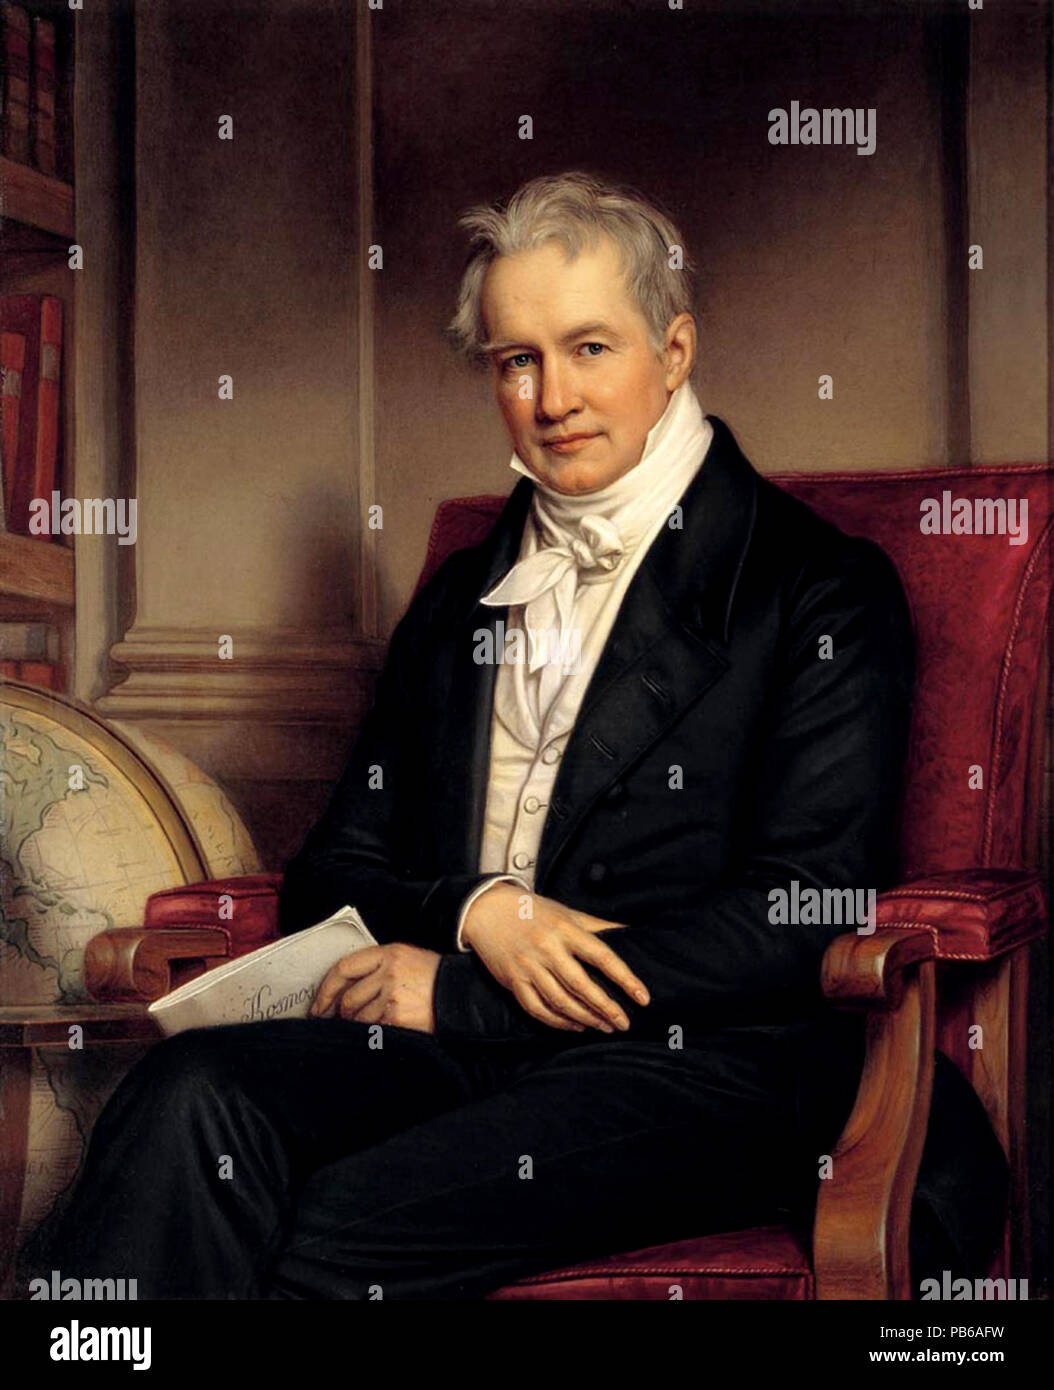 Alexander von Humboldt, 1843 Photo Stock